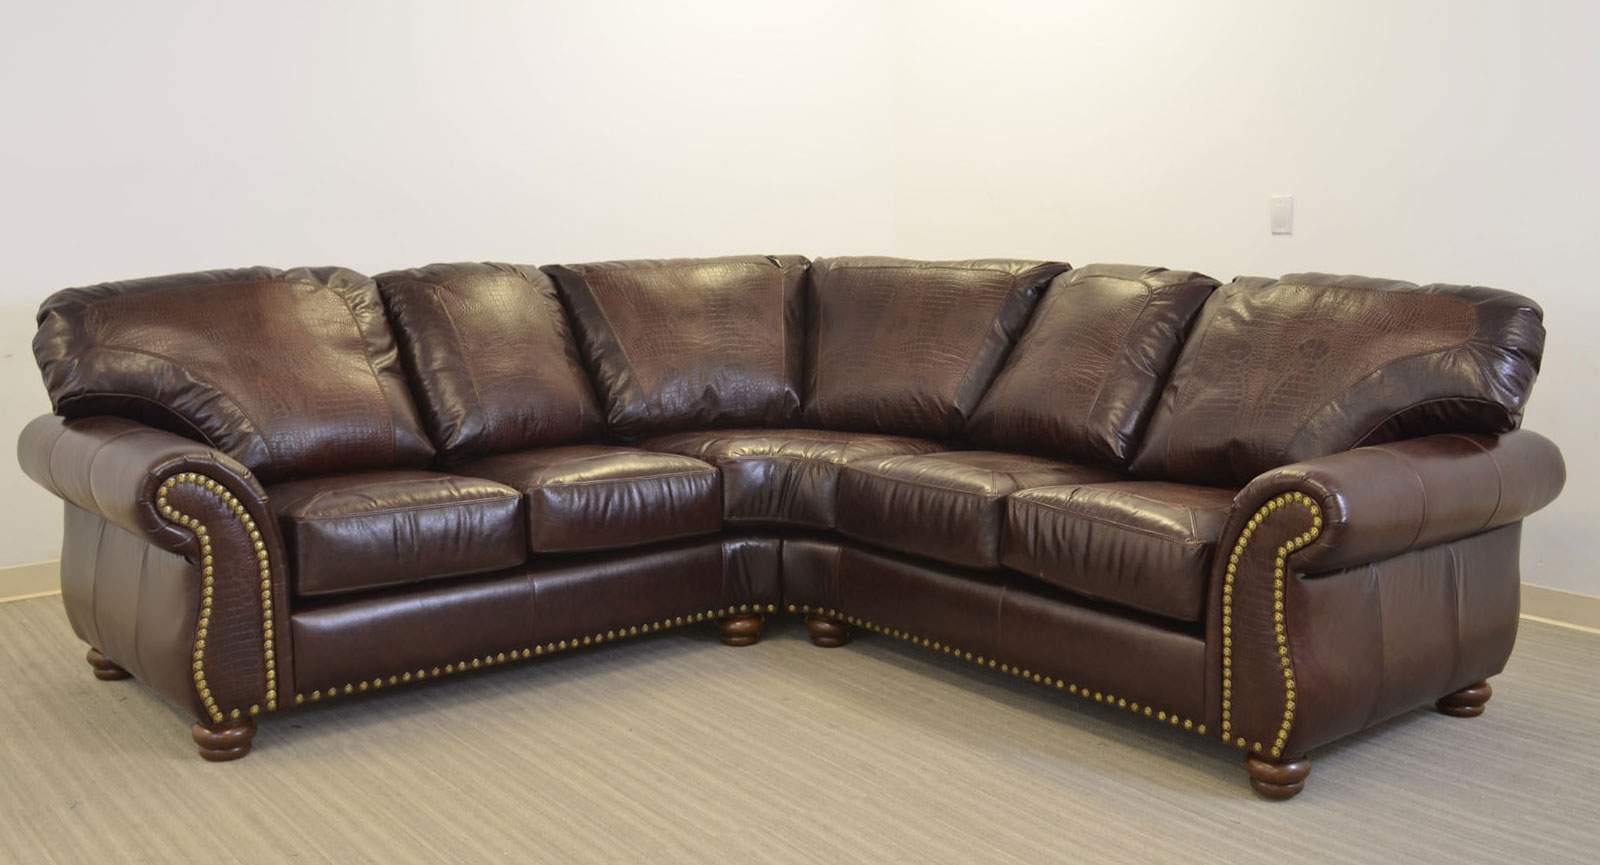 Old Fashioned Leather Sofa